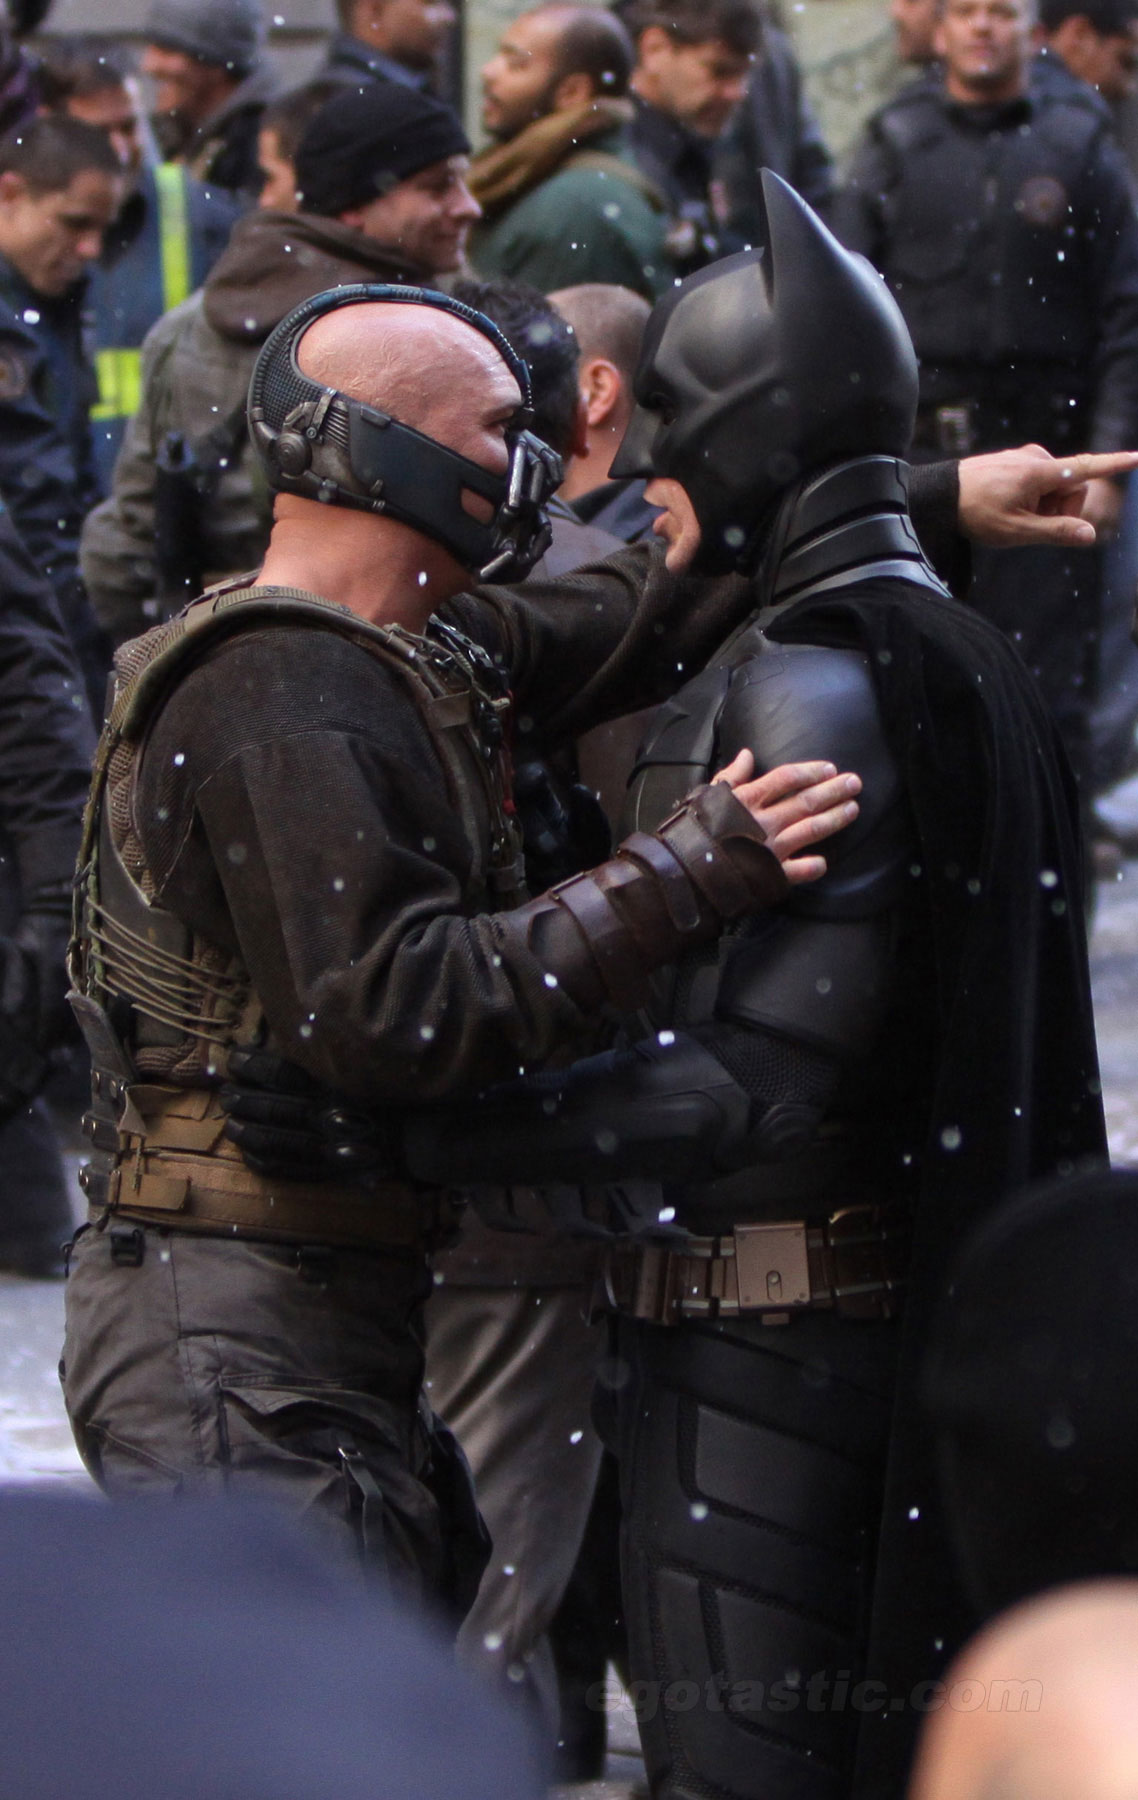 dark-knight-rises-set-nyc-24